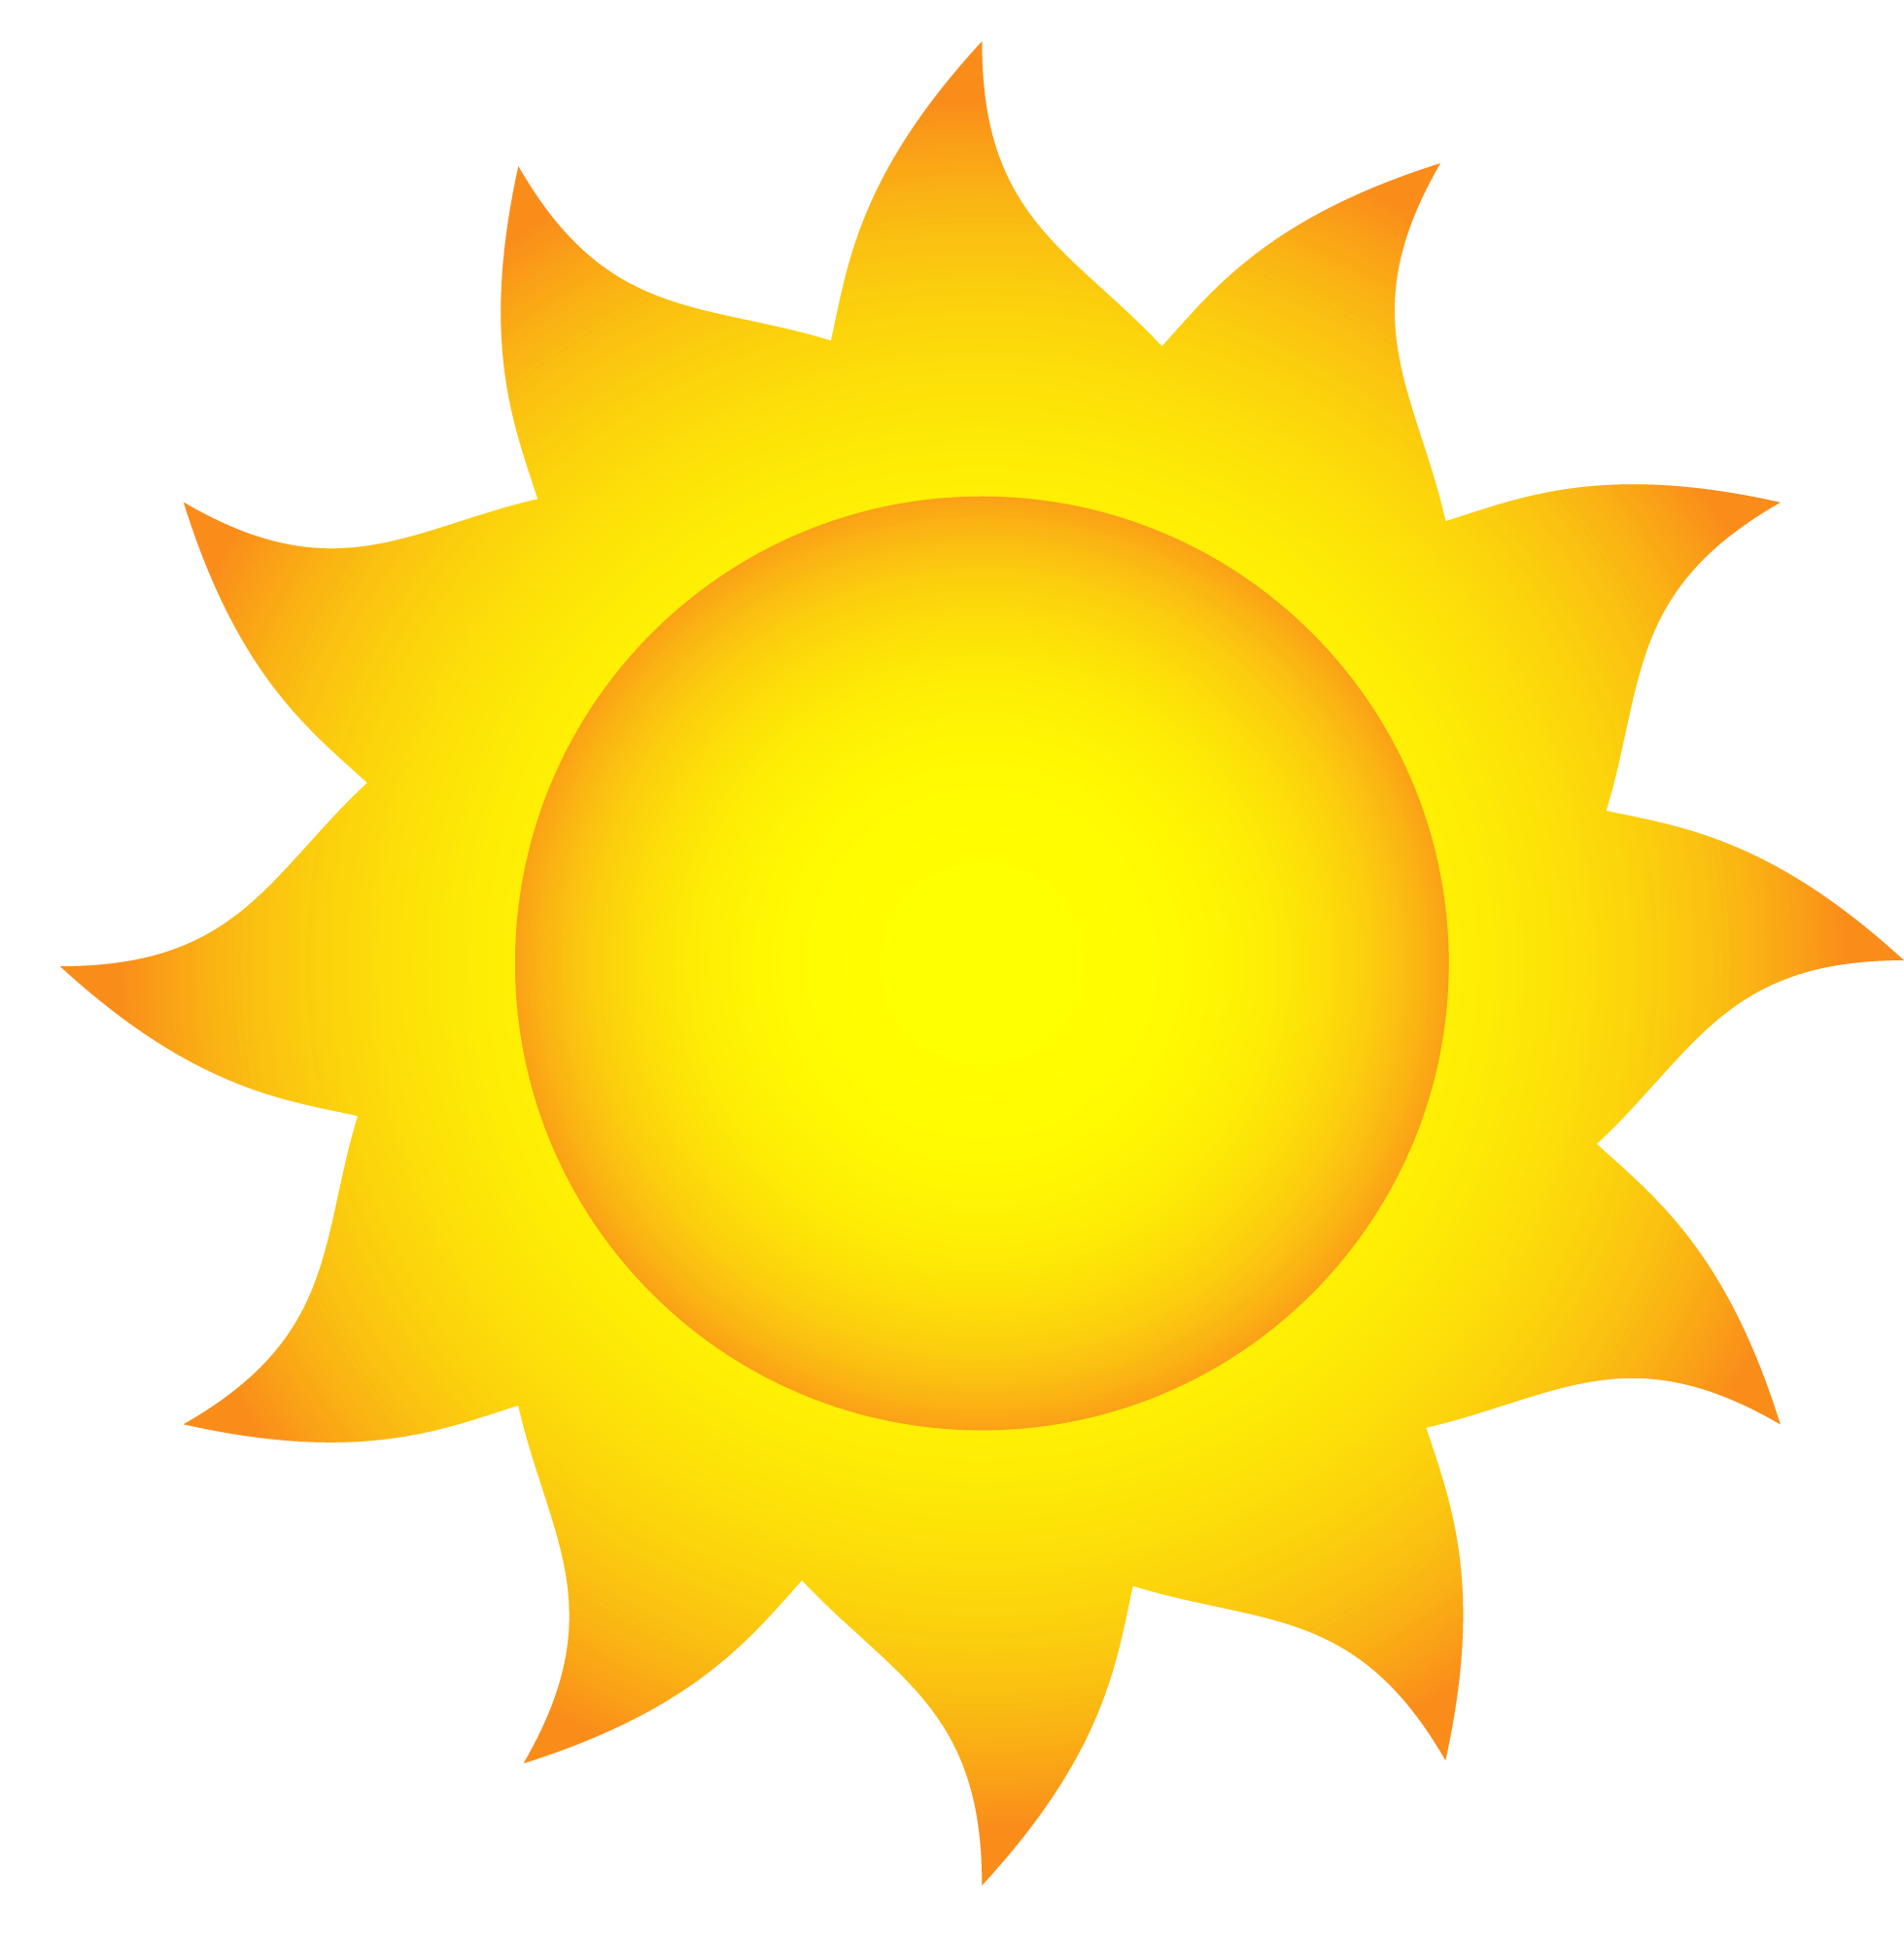 Sol animado png. Transparent sun clipart picture